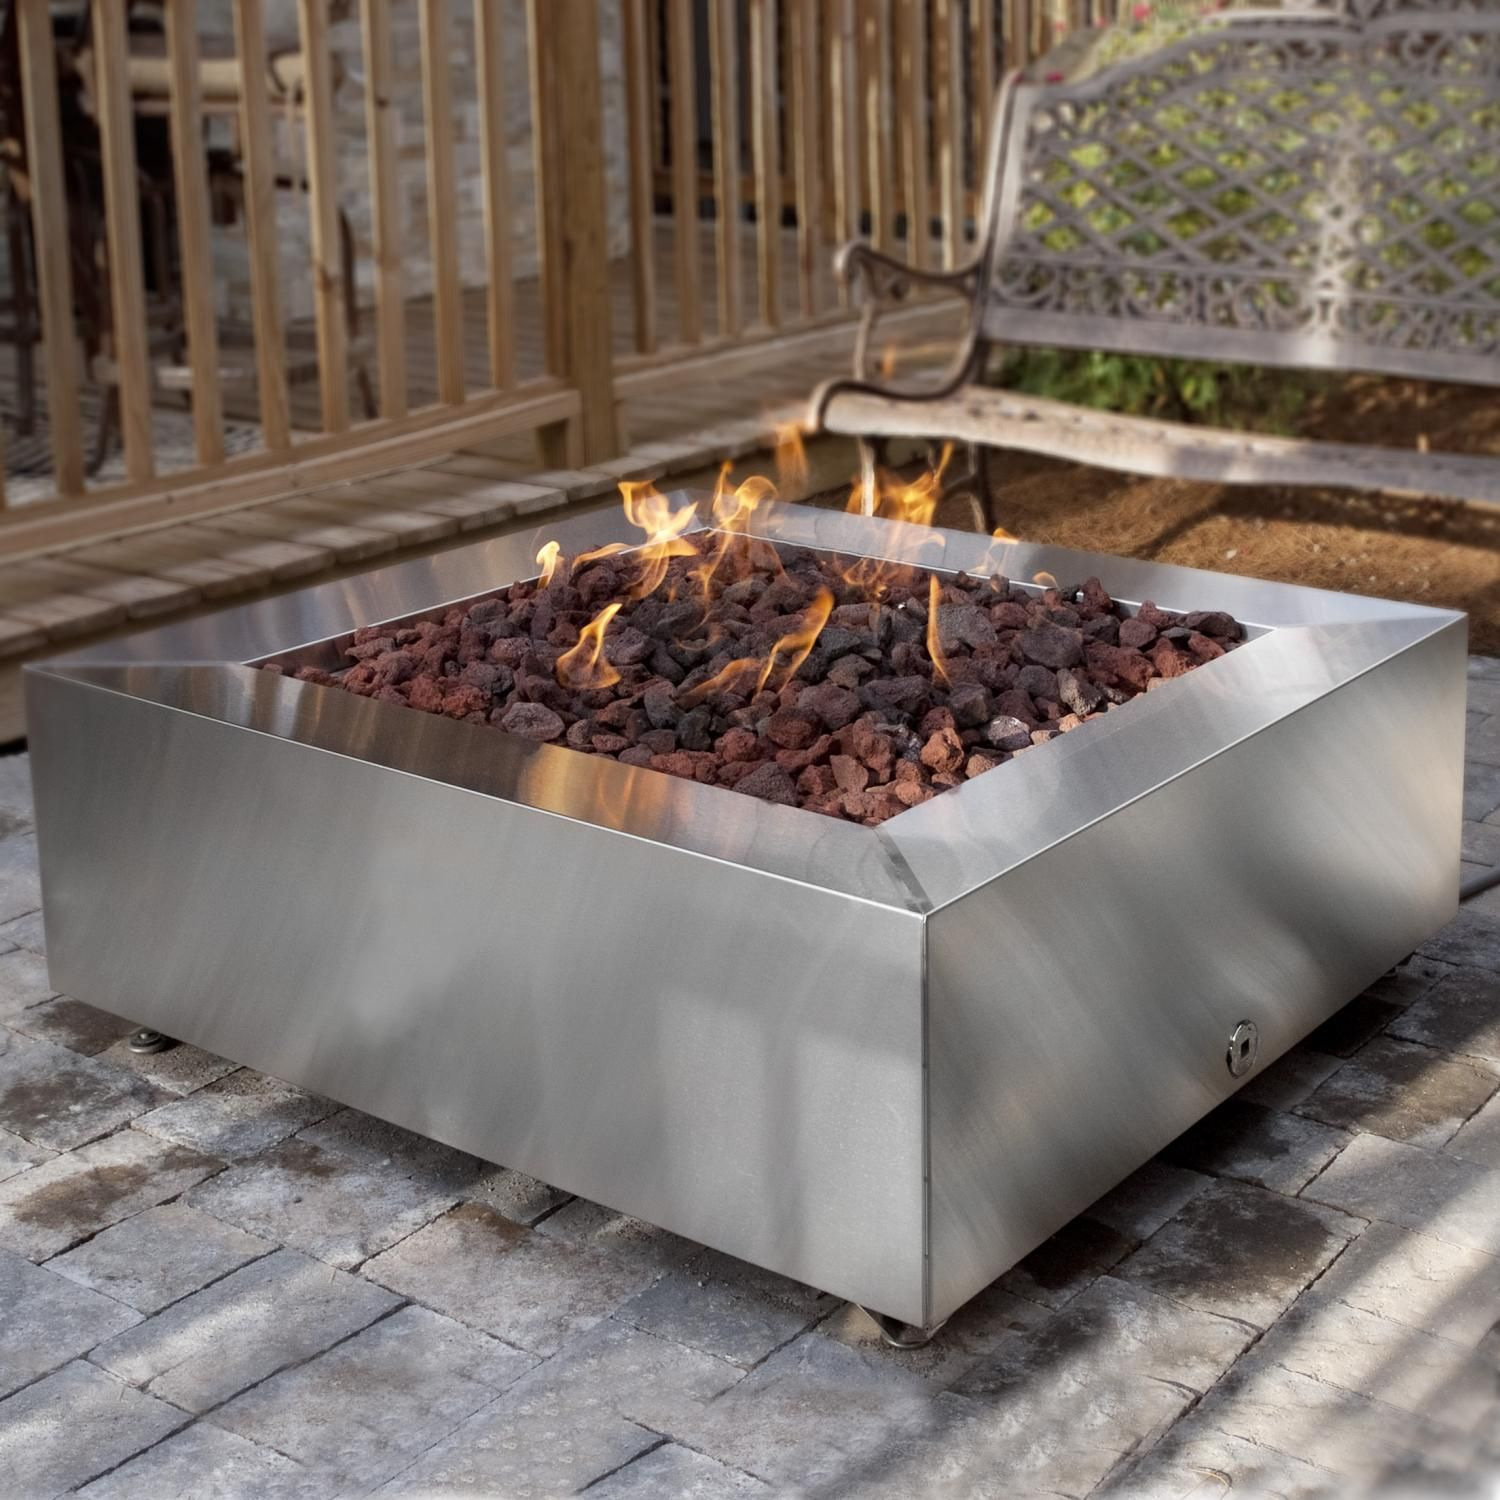 Bbqguys Com 42 Inch Stainless Steel Square Fire Pit Natural Gas Ultimate Patio Steel Fire Pit Fire Pit Furniture Propane Fire Pit